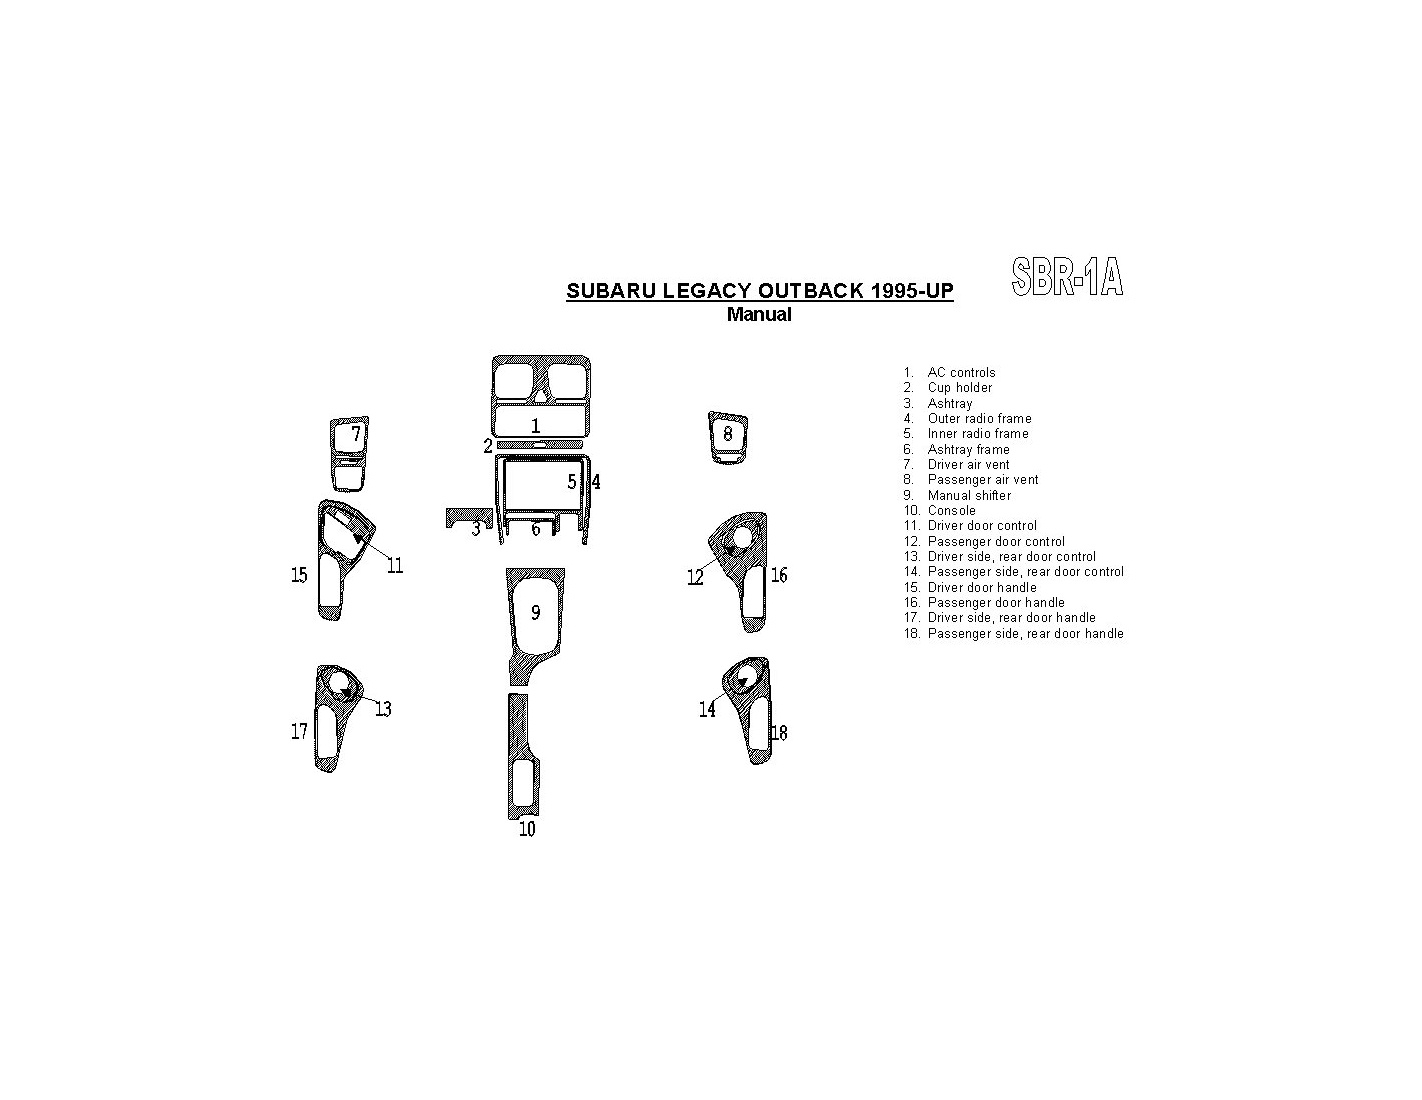 Subaru Legacy Outback 1995-1999 Manual Gearbox, 18 Parts